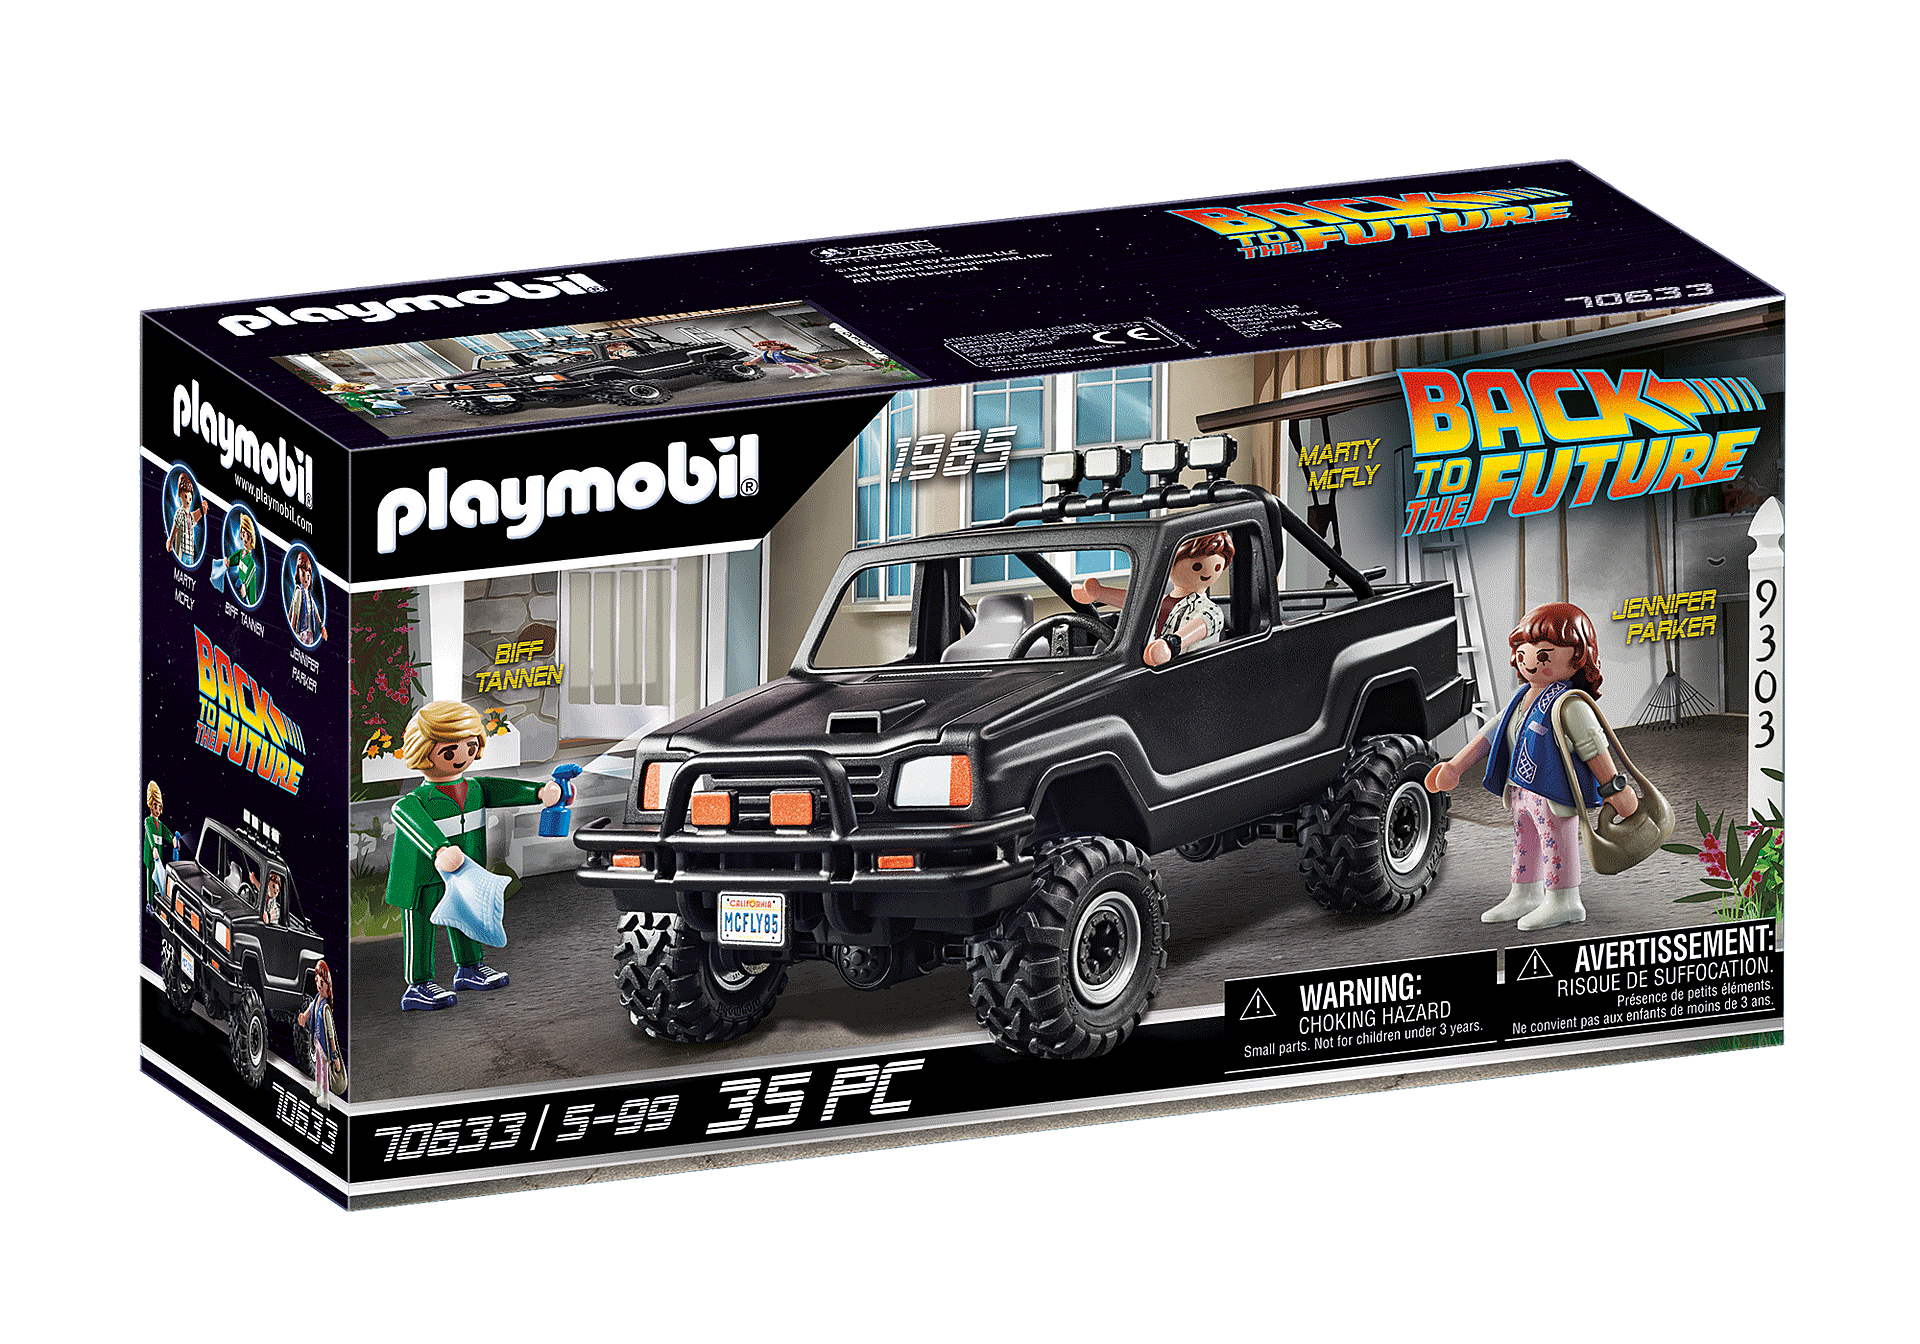 70633 Pick-up di Marty McFly zoom image3